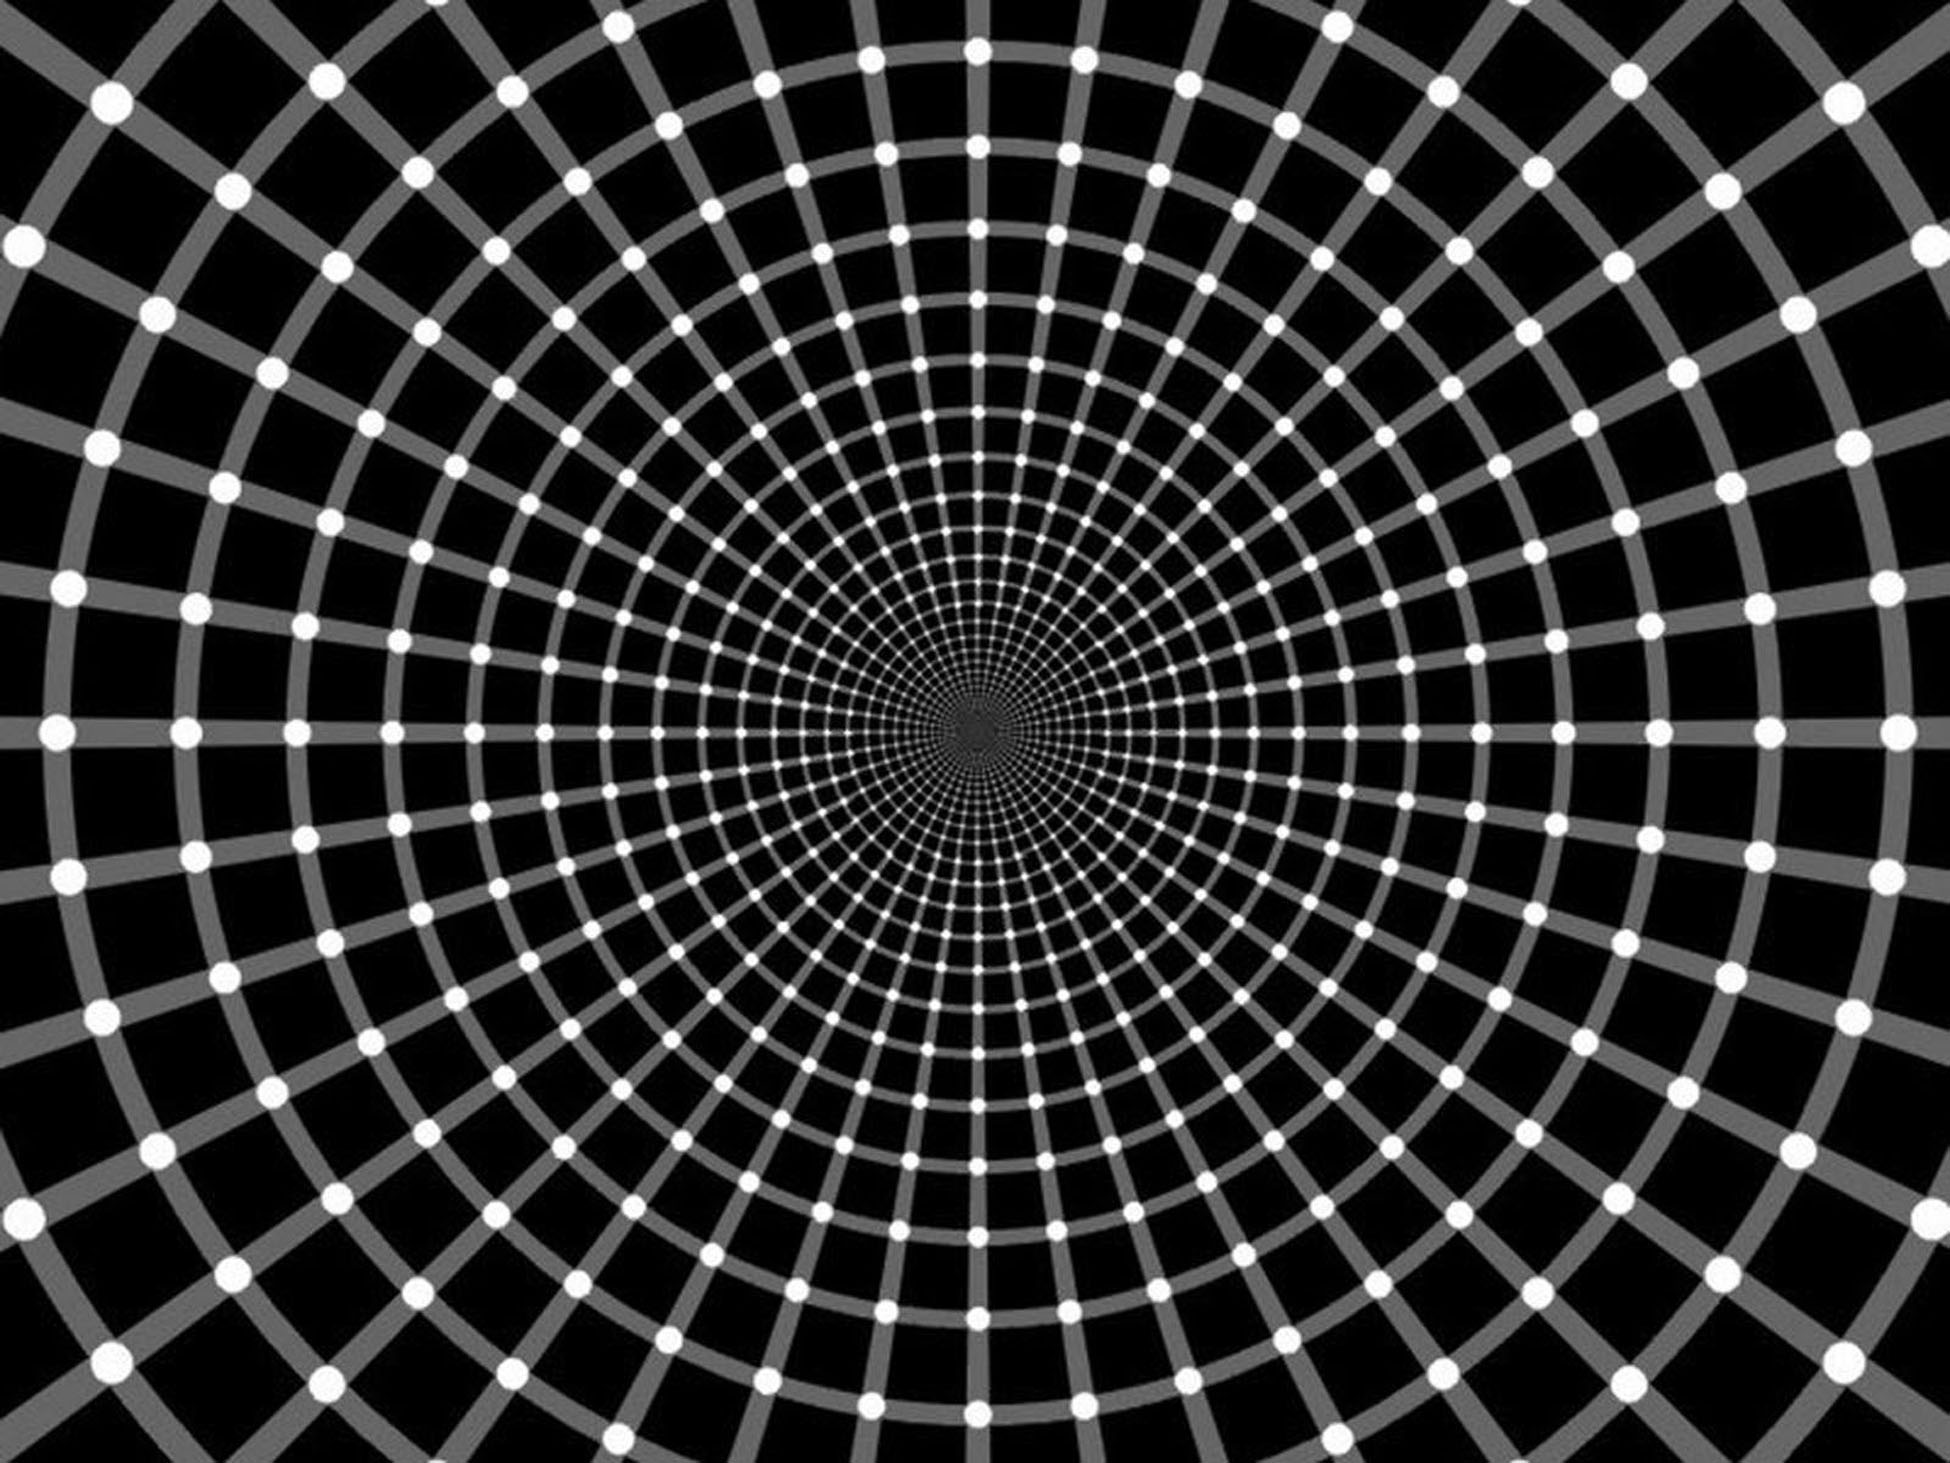 Best Wallpaper Hd For Iphone 6 Get These Trippy Wallpapers Hd The Nology